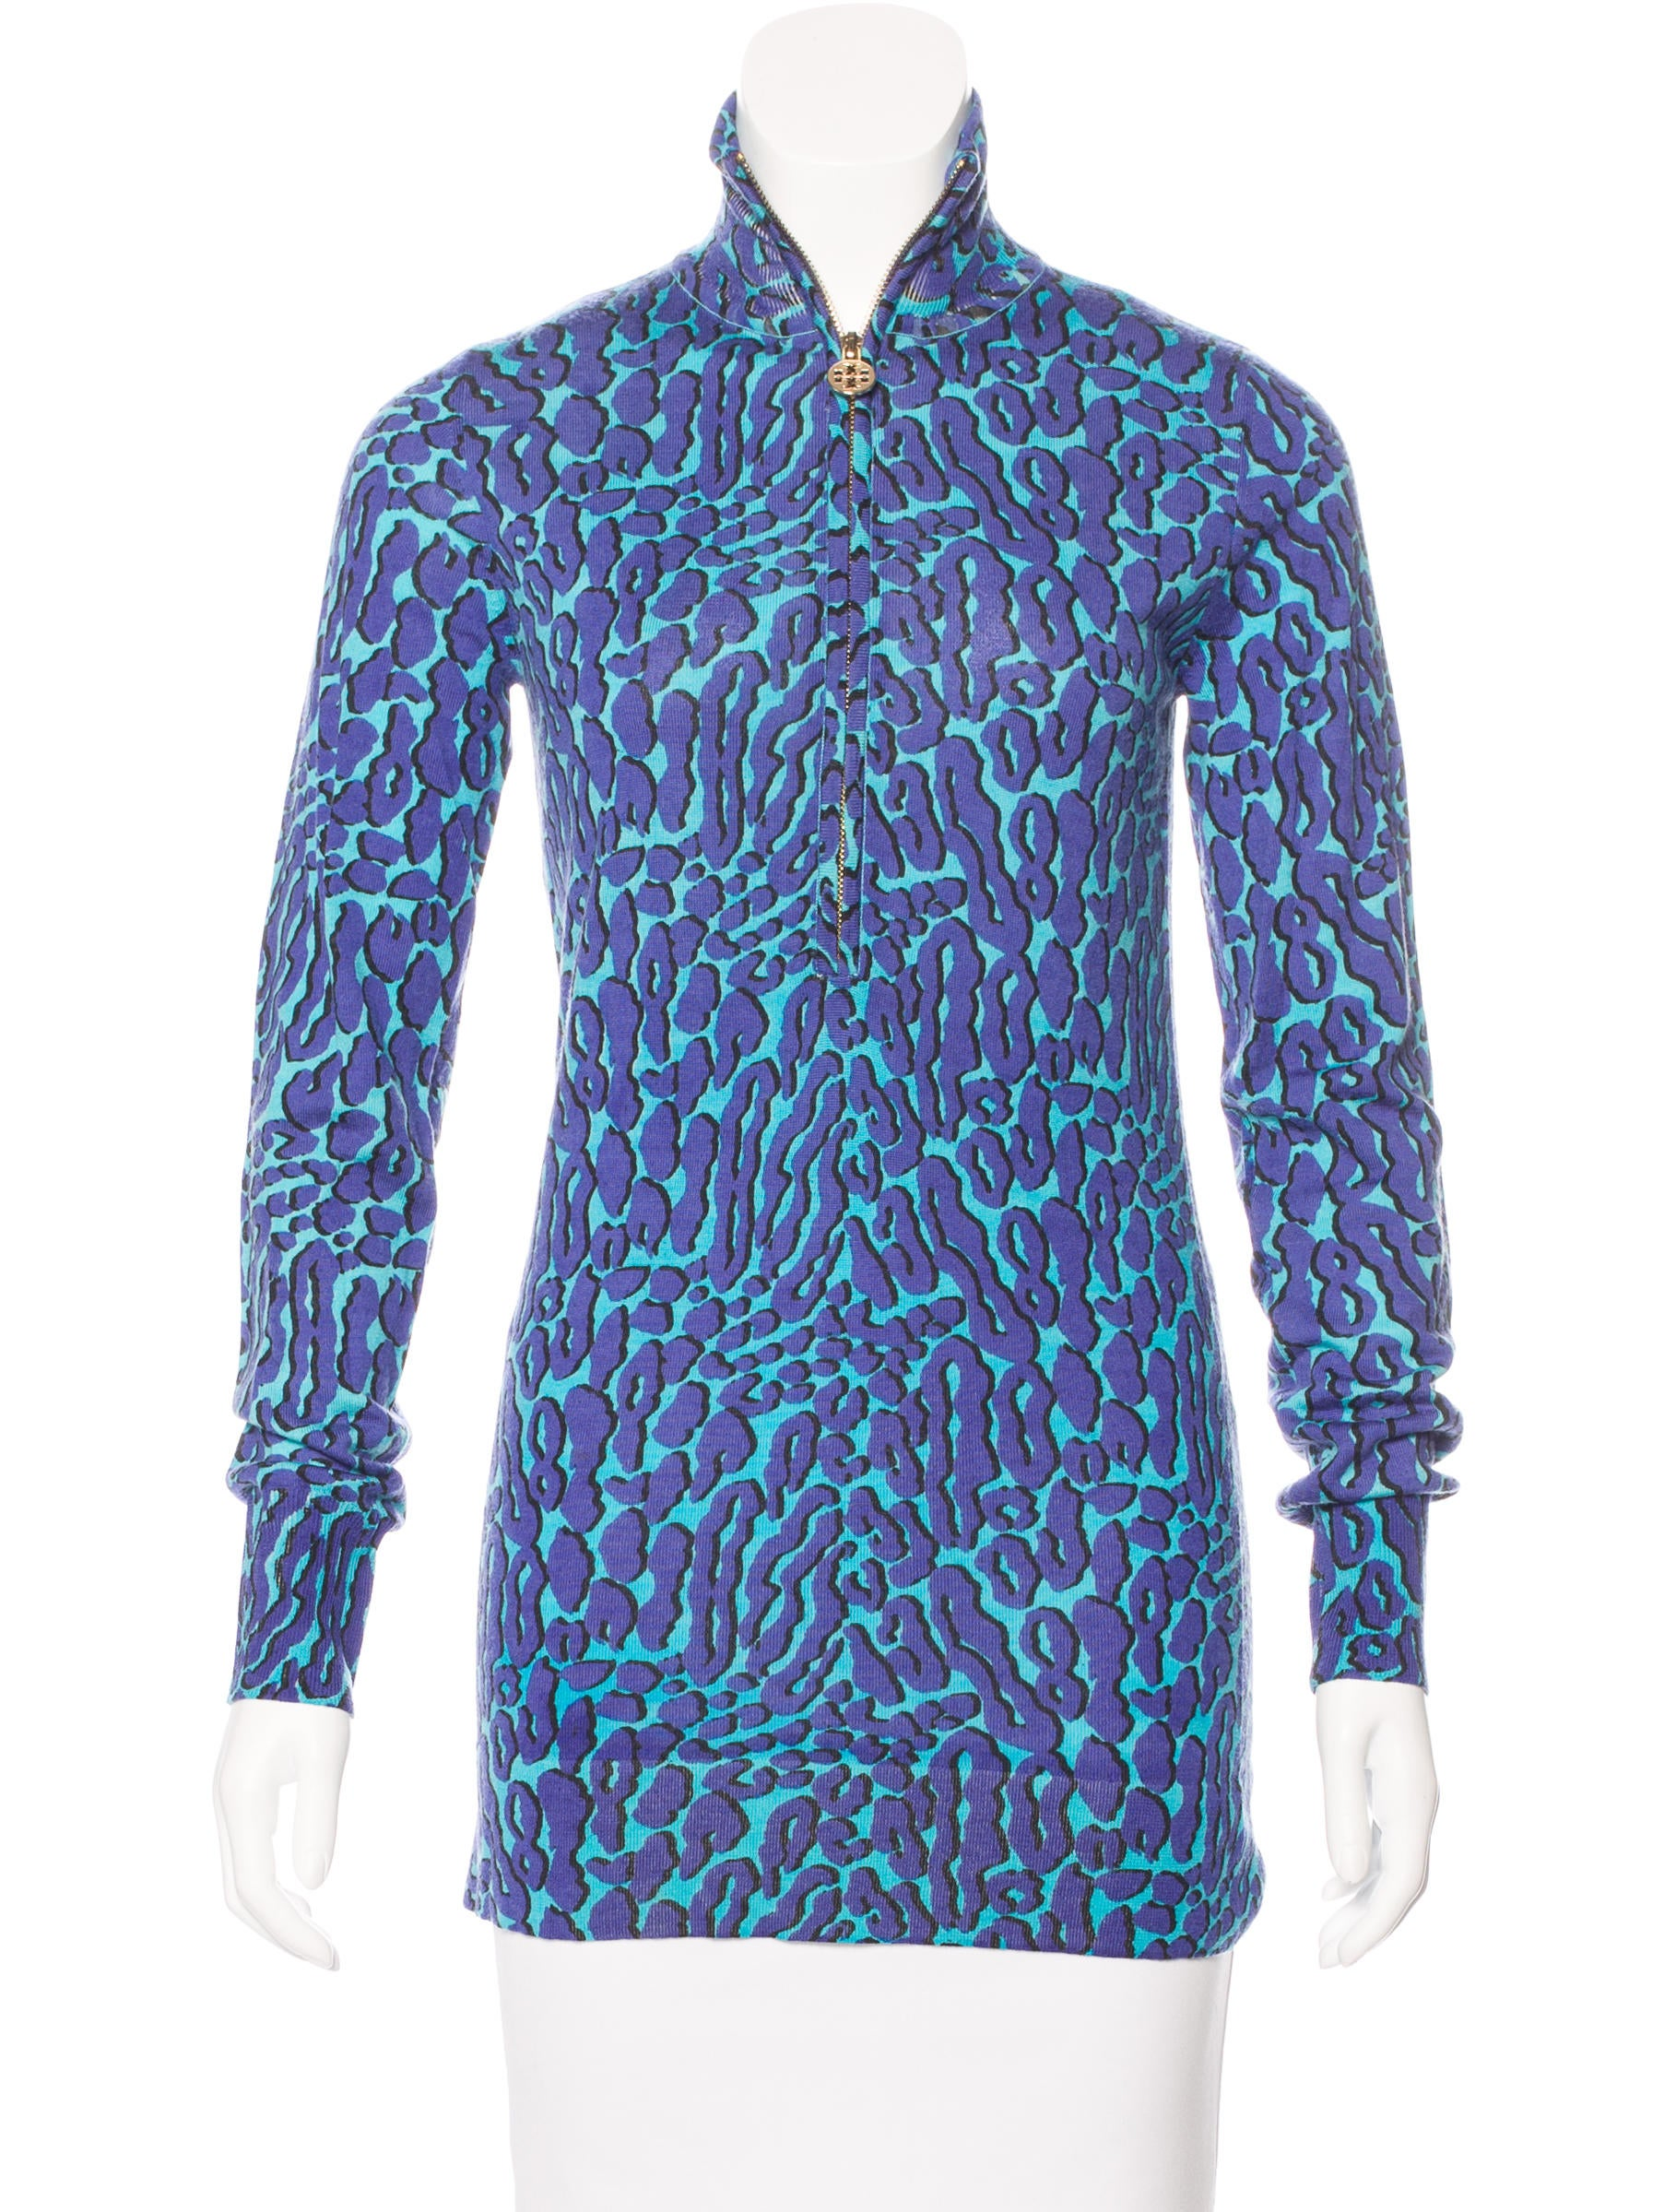 30a3cffdf8824d Tory Burch Leopard Print Turtleneck Sweater - Clothing - WTO97217 ...